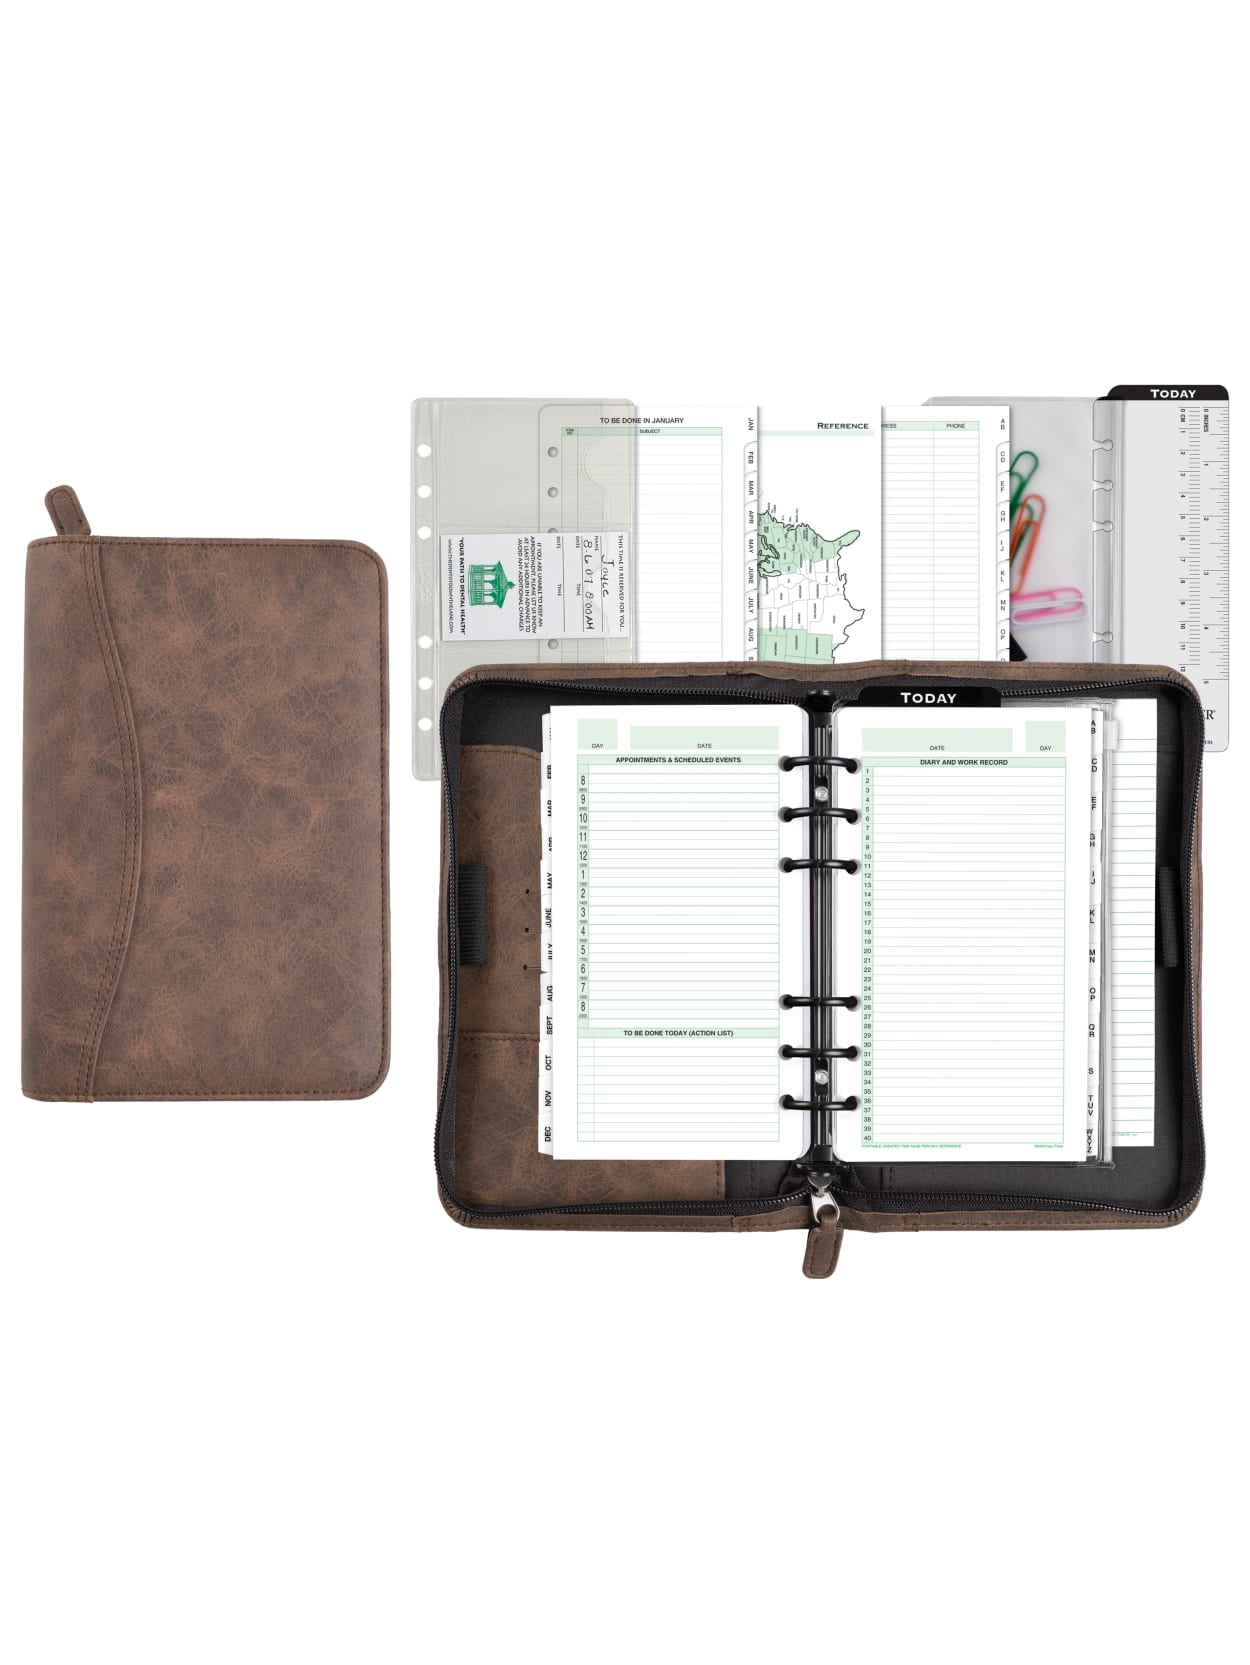 It is a graphic of Stylish Planners and Organizers intended for book